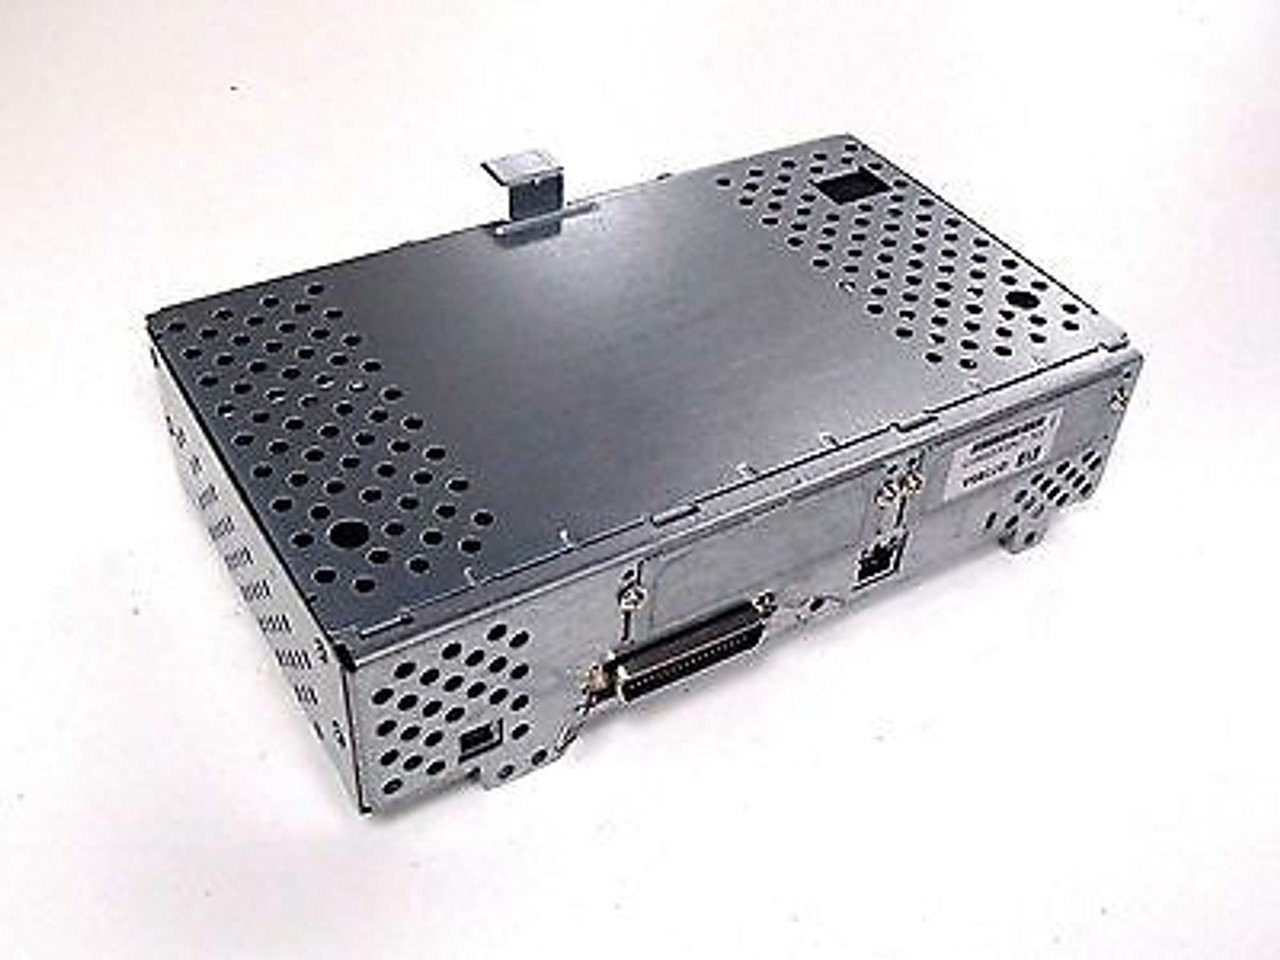 HP LaserJet 4300 Formatter Board with cage